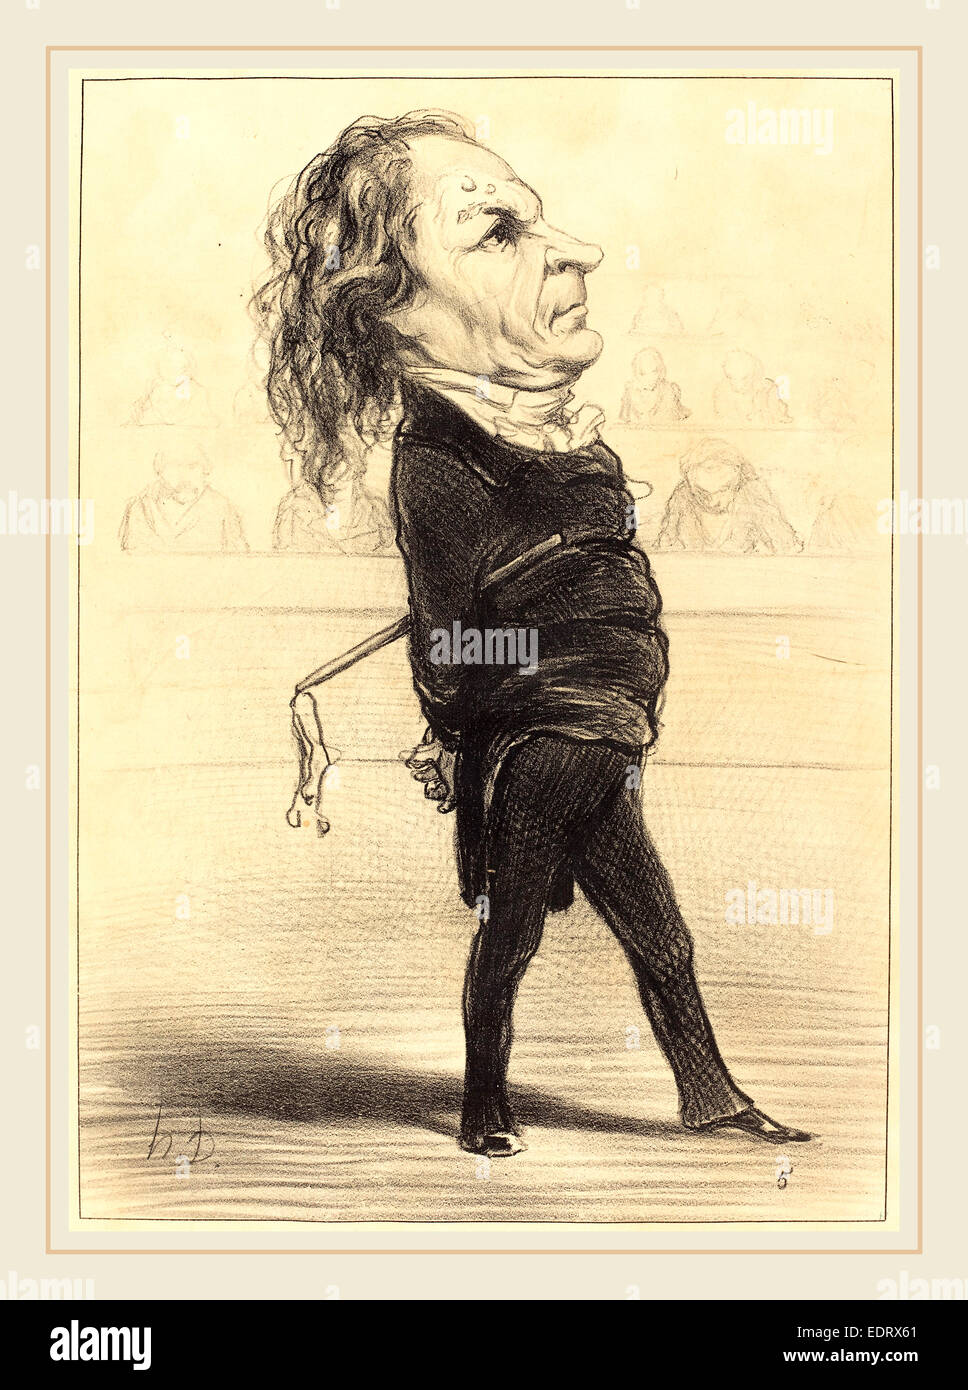 Honoré Daumier (French, 1808-1879), Alex. Thomas Marie, 1849, lithograph - Stock Image